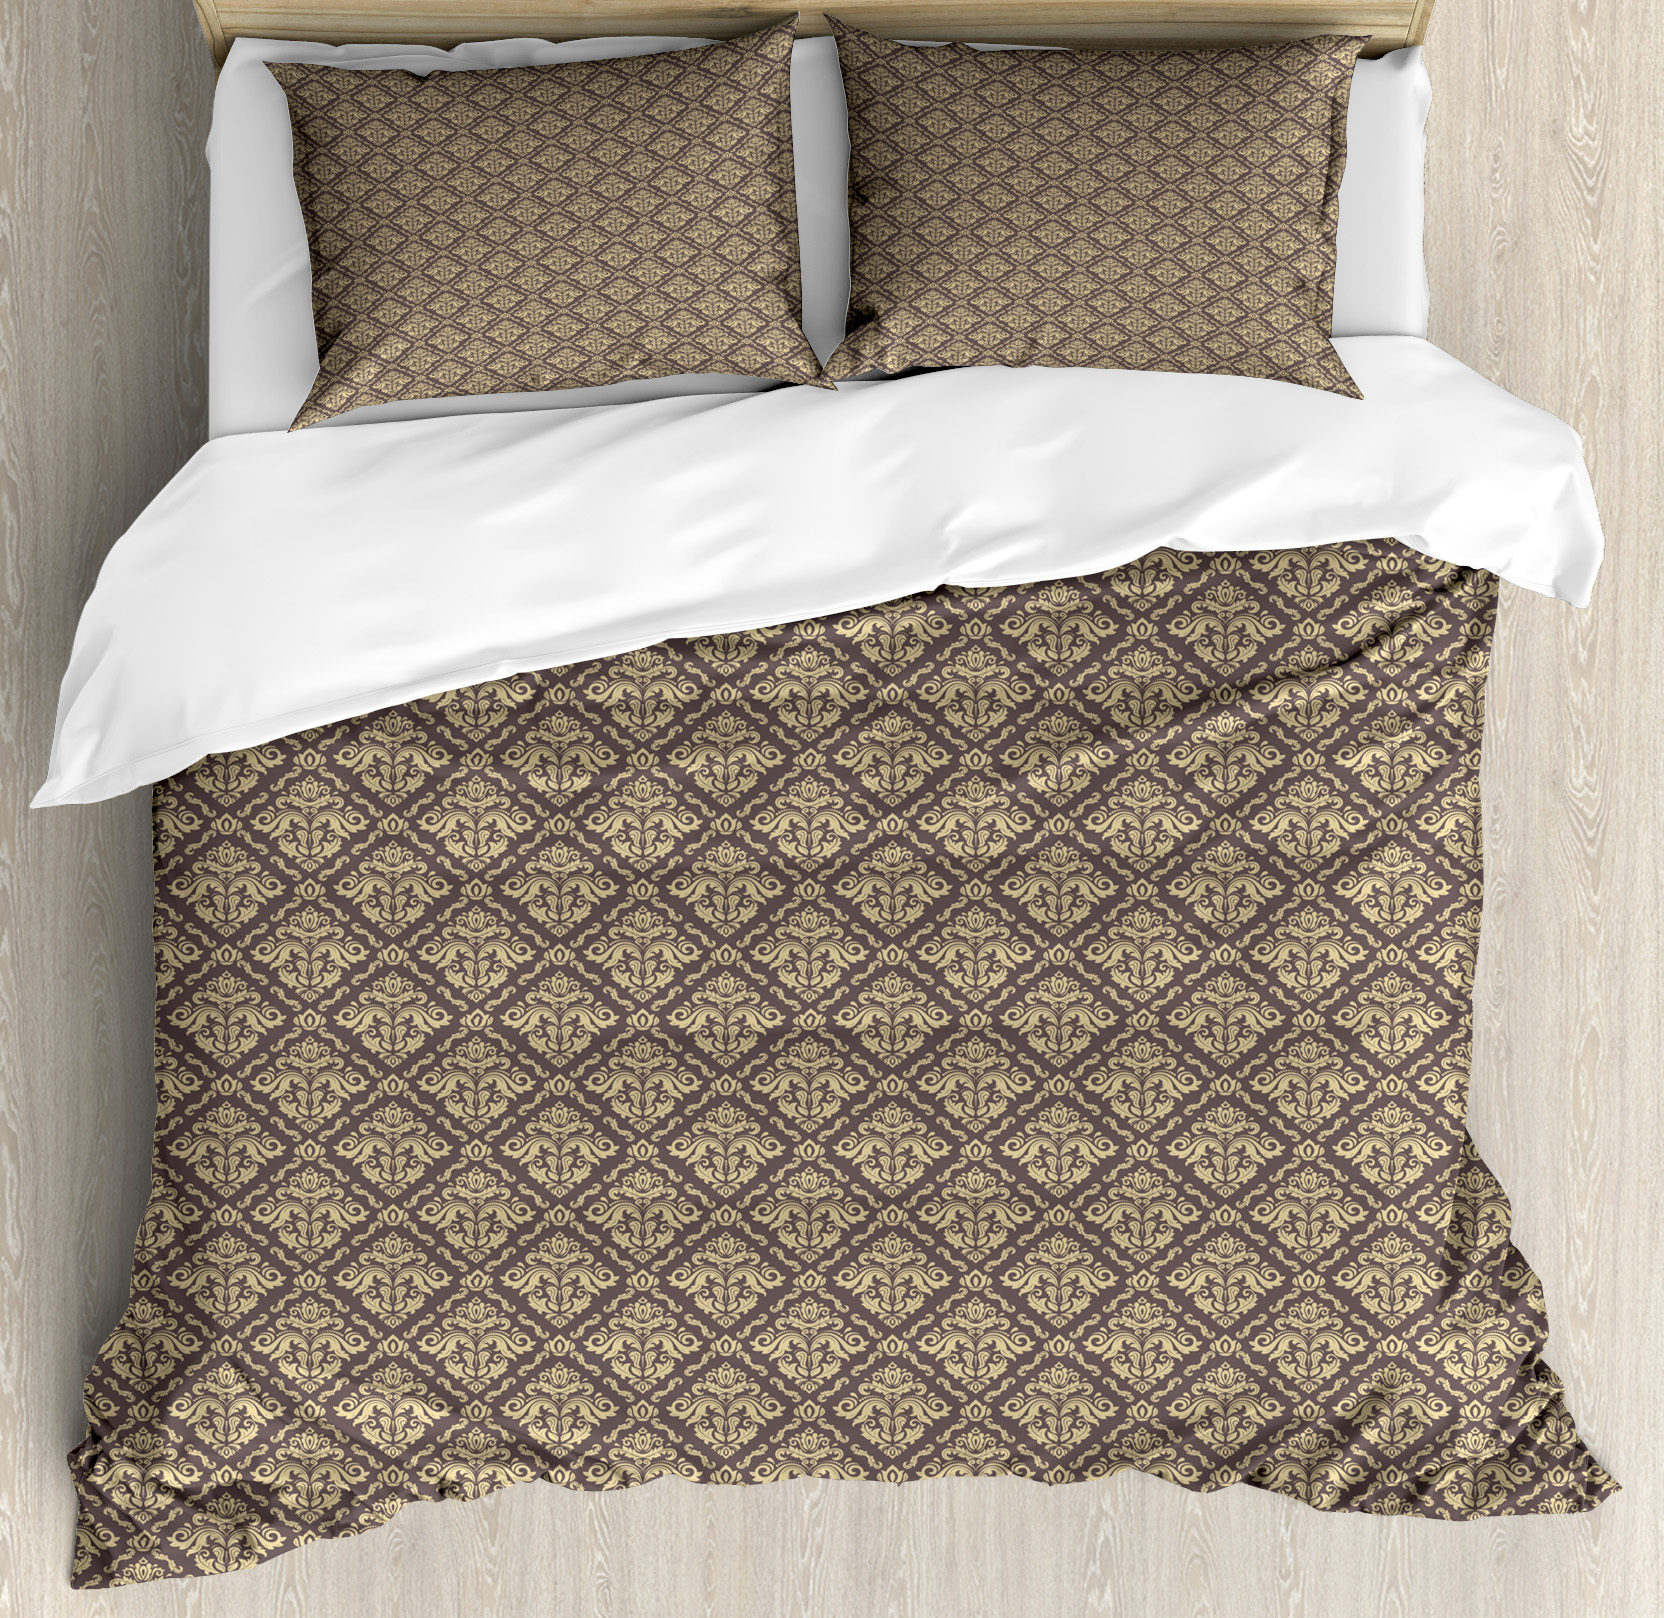 Oriental King Size Duvet Cover Set, Classical Pattern with Damask Ornaments Antique Flourish Curly Leaves Pattern, Decorative 3 Piece Bedding Set with 2 Pillow Shams, Taupe and Beige, by Ambesonne